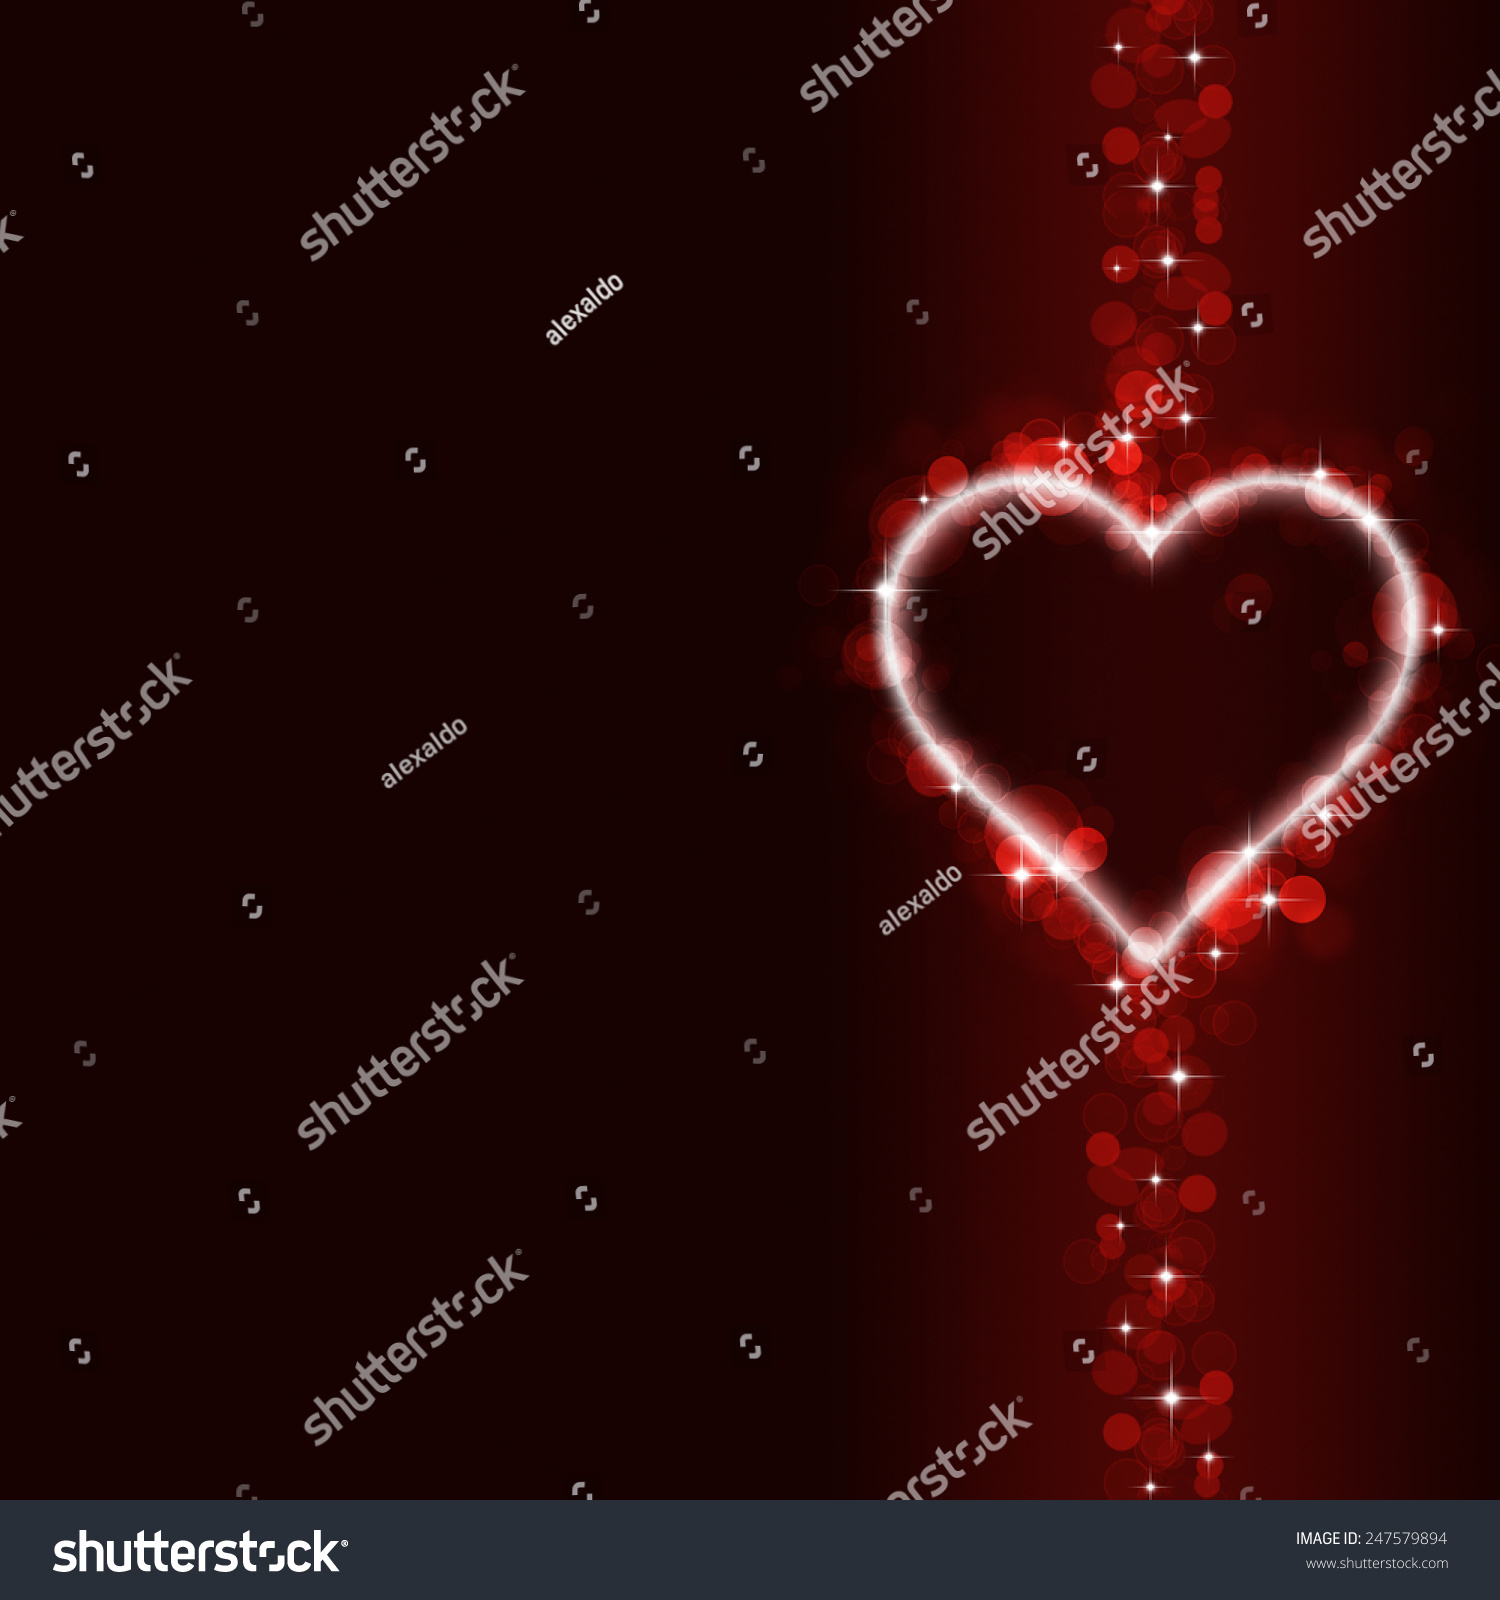 Abstract Valentine Red Background With Blurred Lights And Hearts   Valentine  Lights